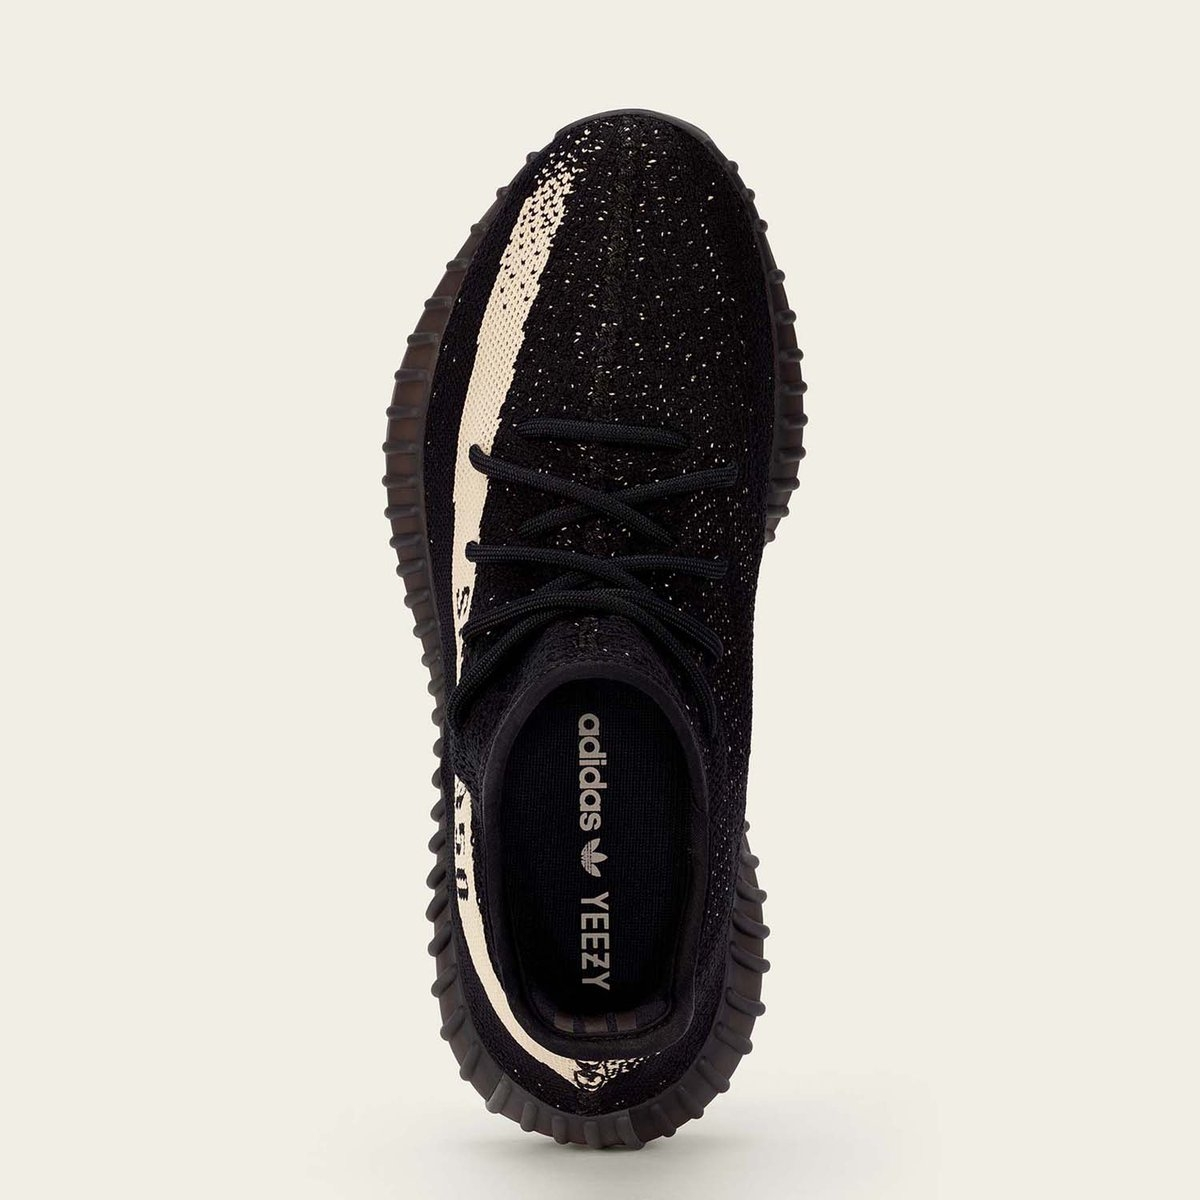 hot sale online 04c48 08a89 Adidas Yeezy Boost 350 V2 Black White